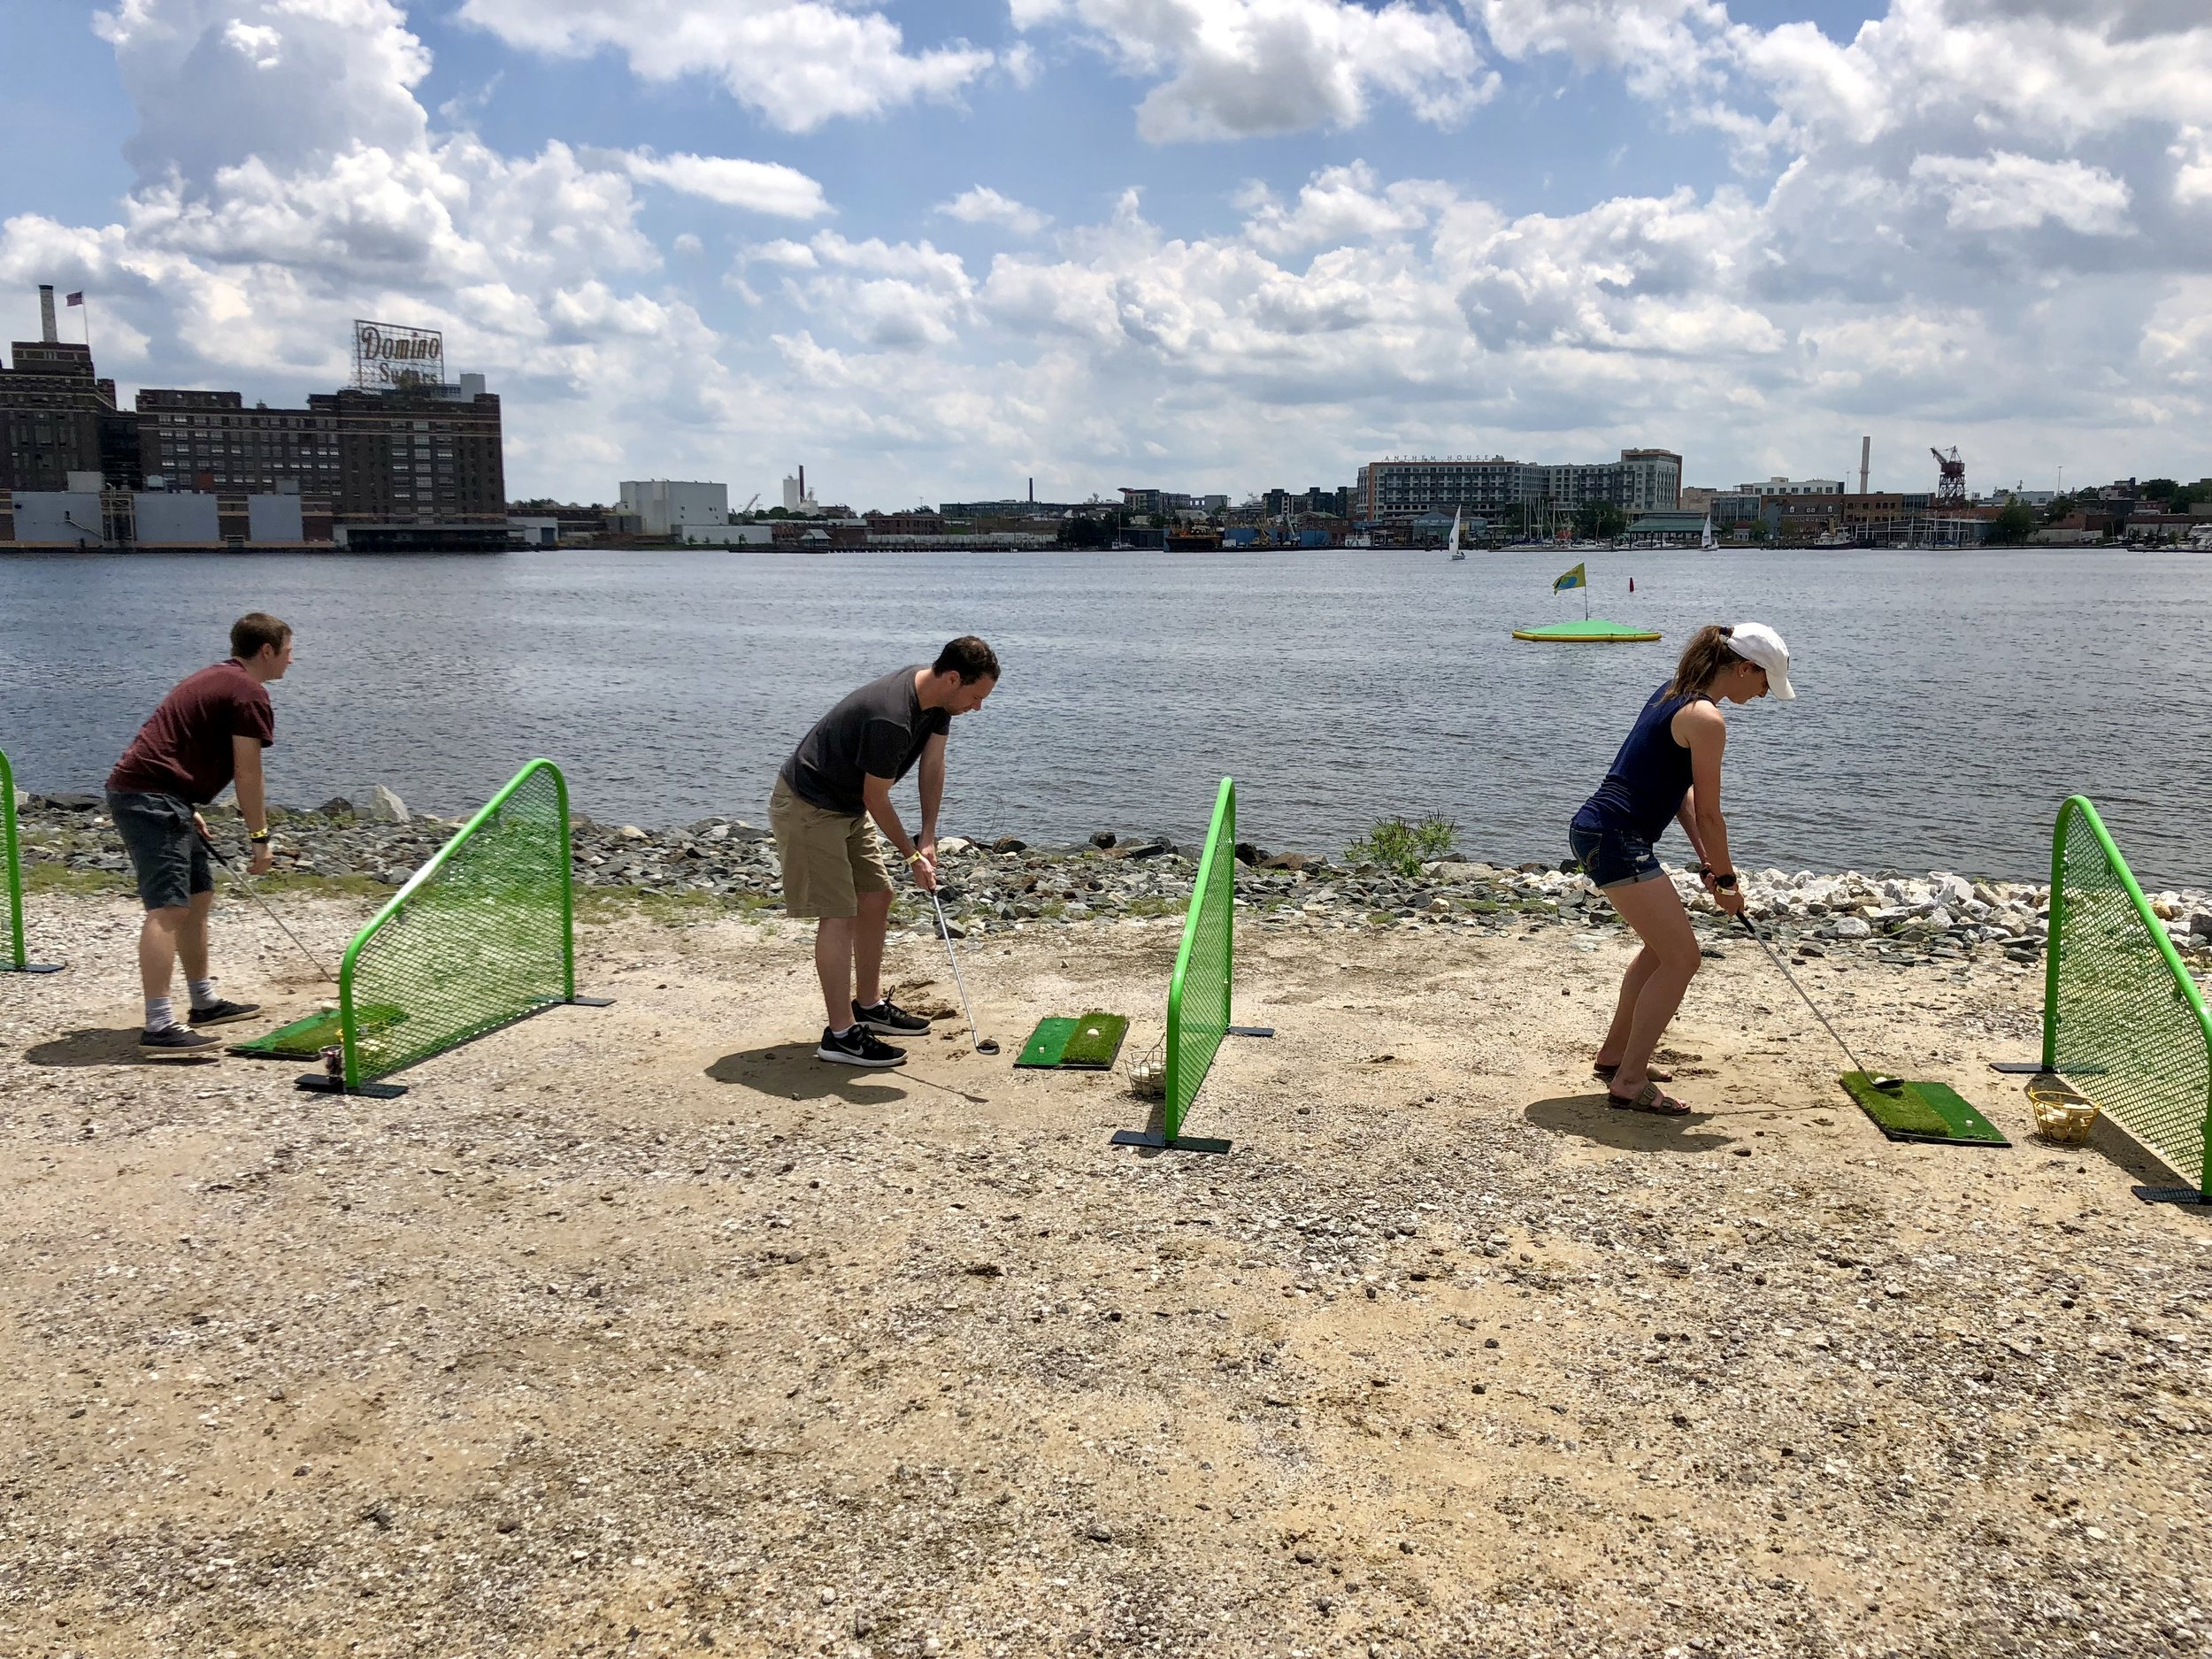 Our pop up waterfront driving ranges drive demand to commercial real estate developments like Beatty Development's Sandlot.